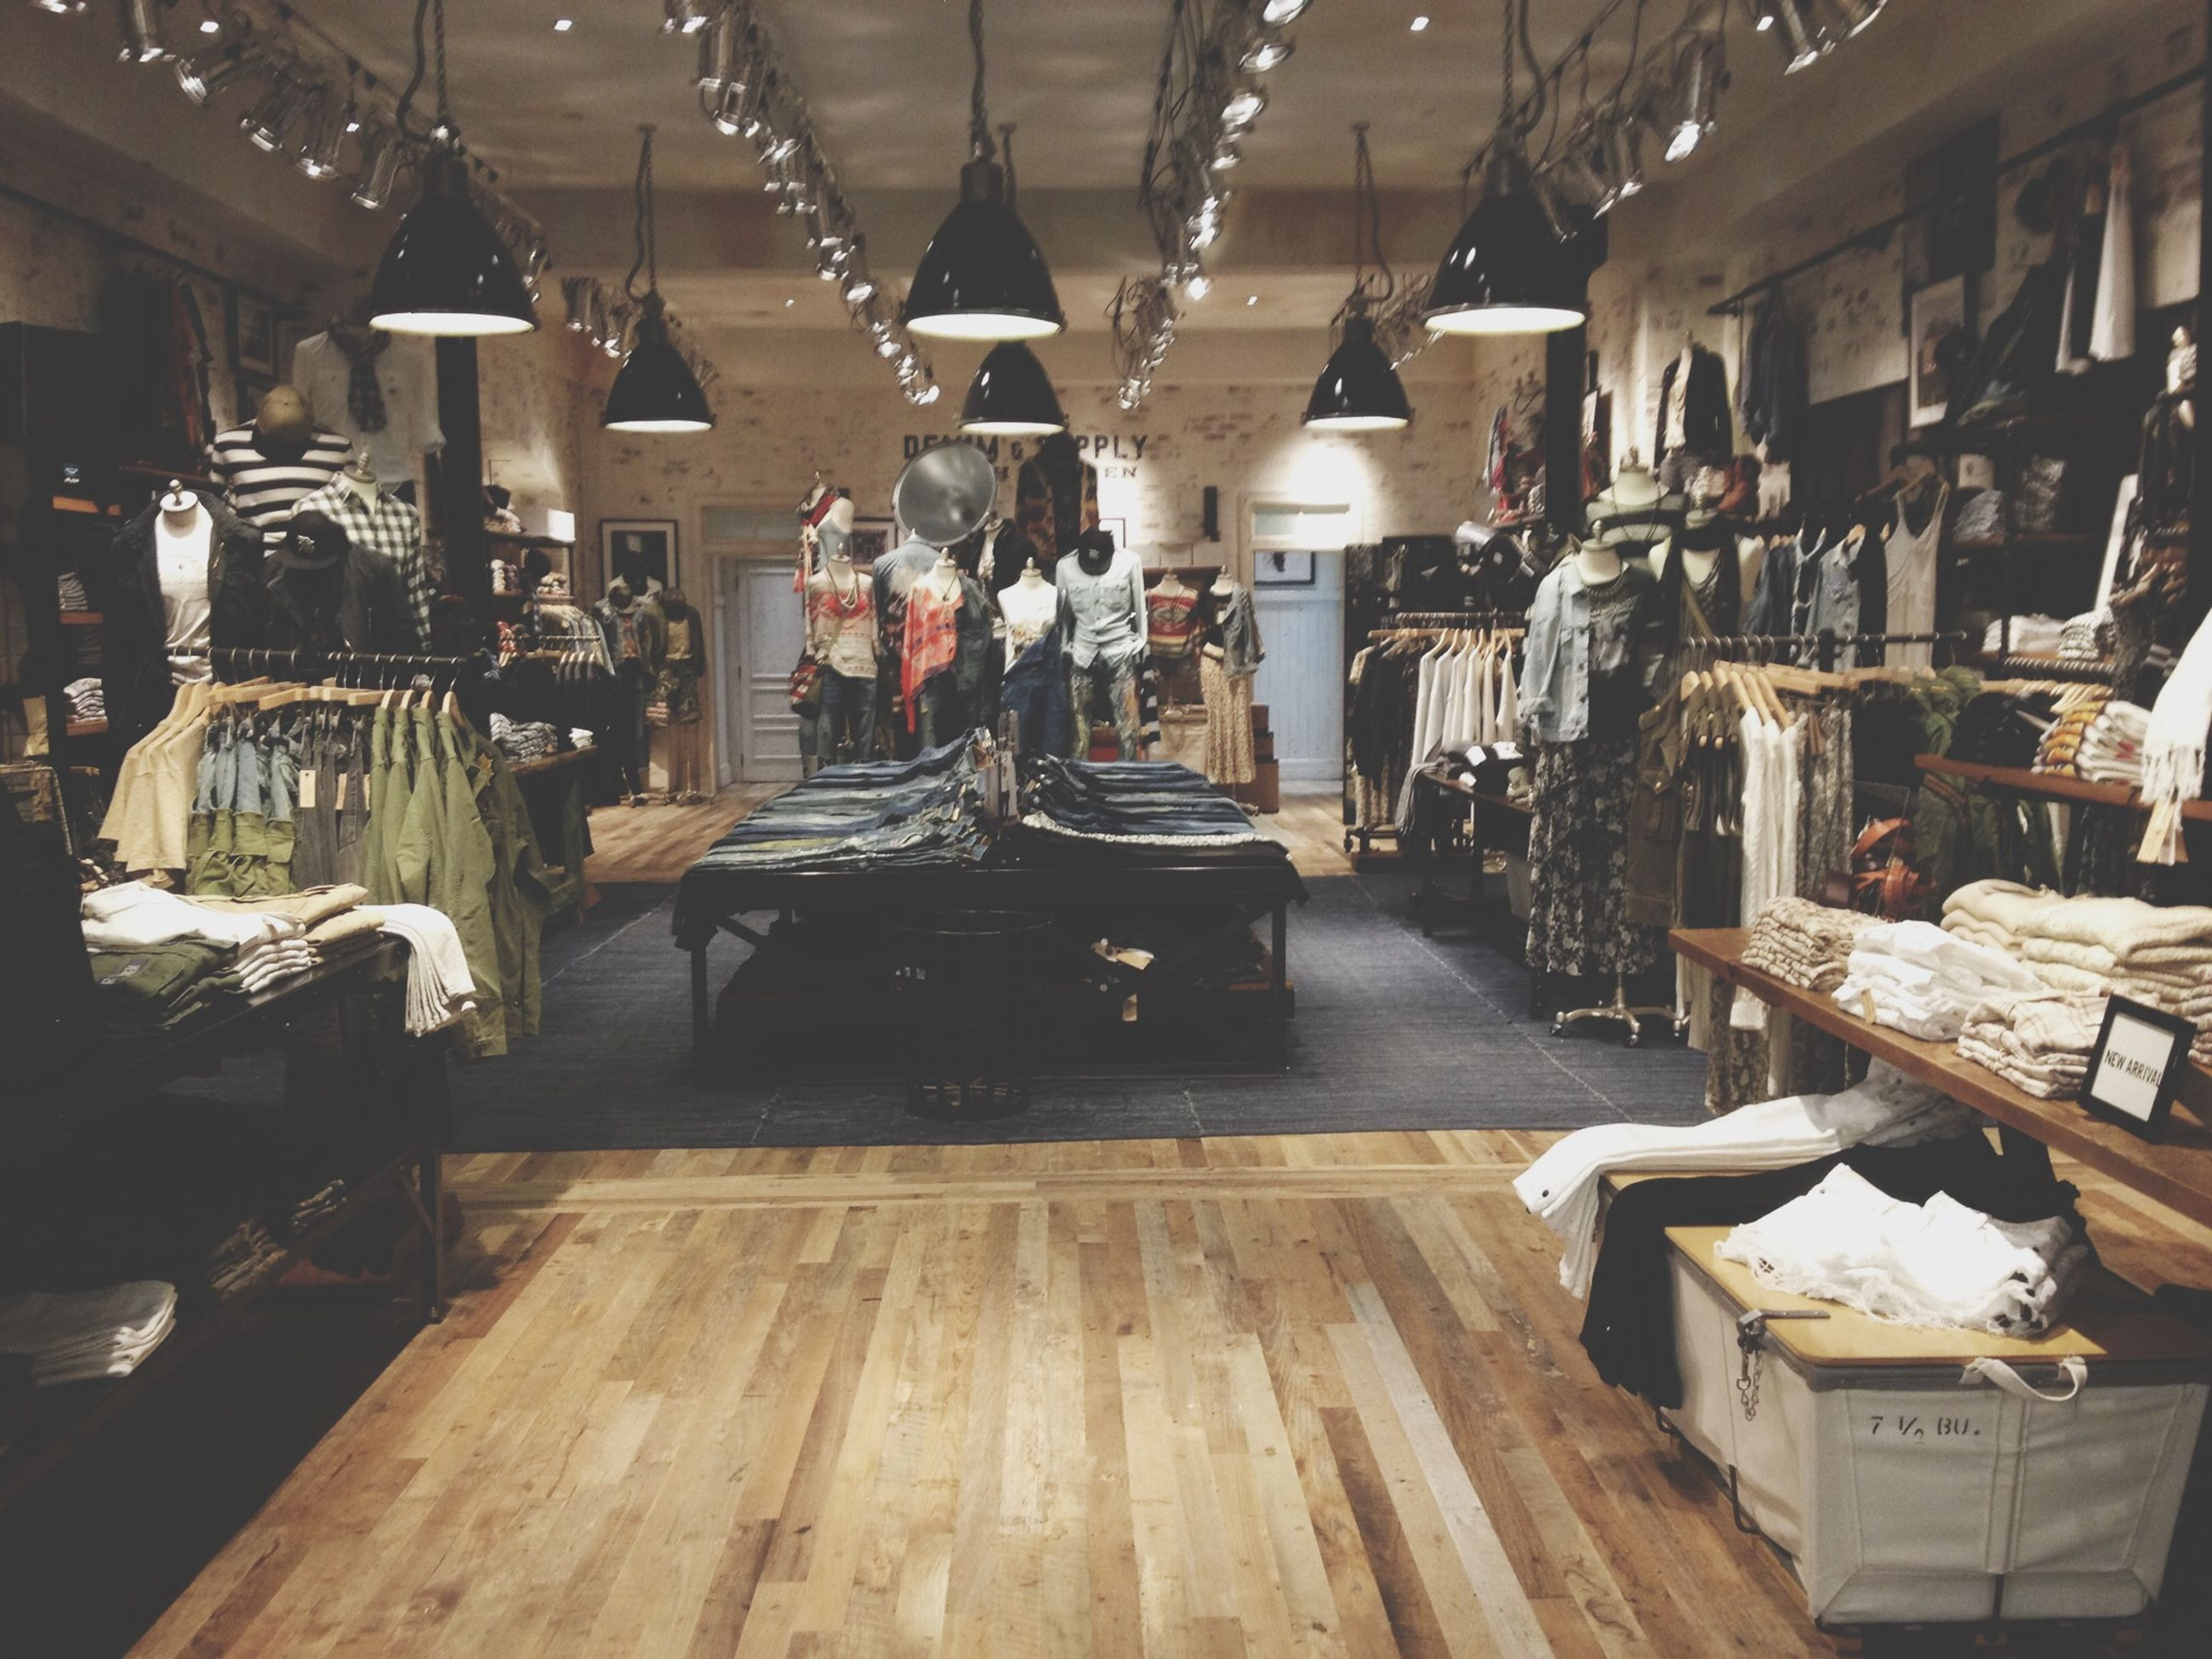 indoors, table, architecture, built structure, wood - material, illuminated, large group of objects, hanging, lighting equipment, in a row, retail, ceiling, incidental people, arrangement, store, chair, no people, absence, empty, day